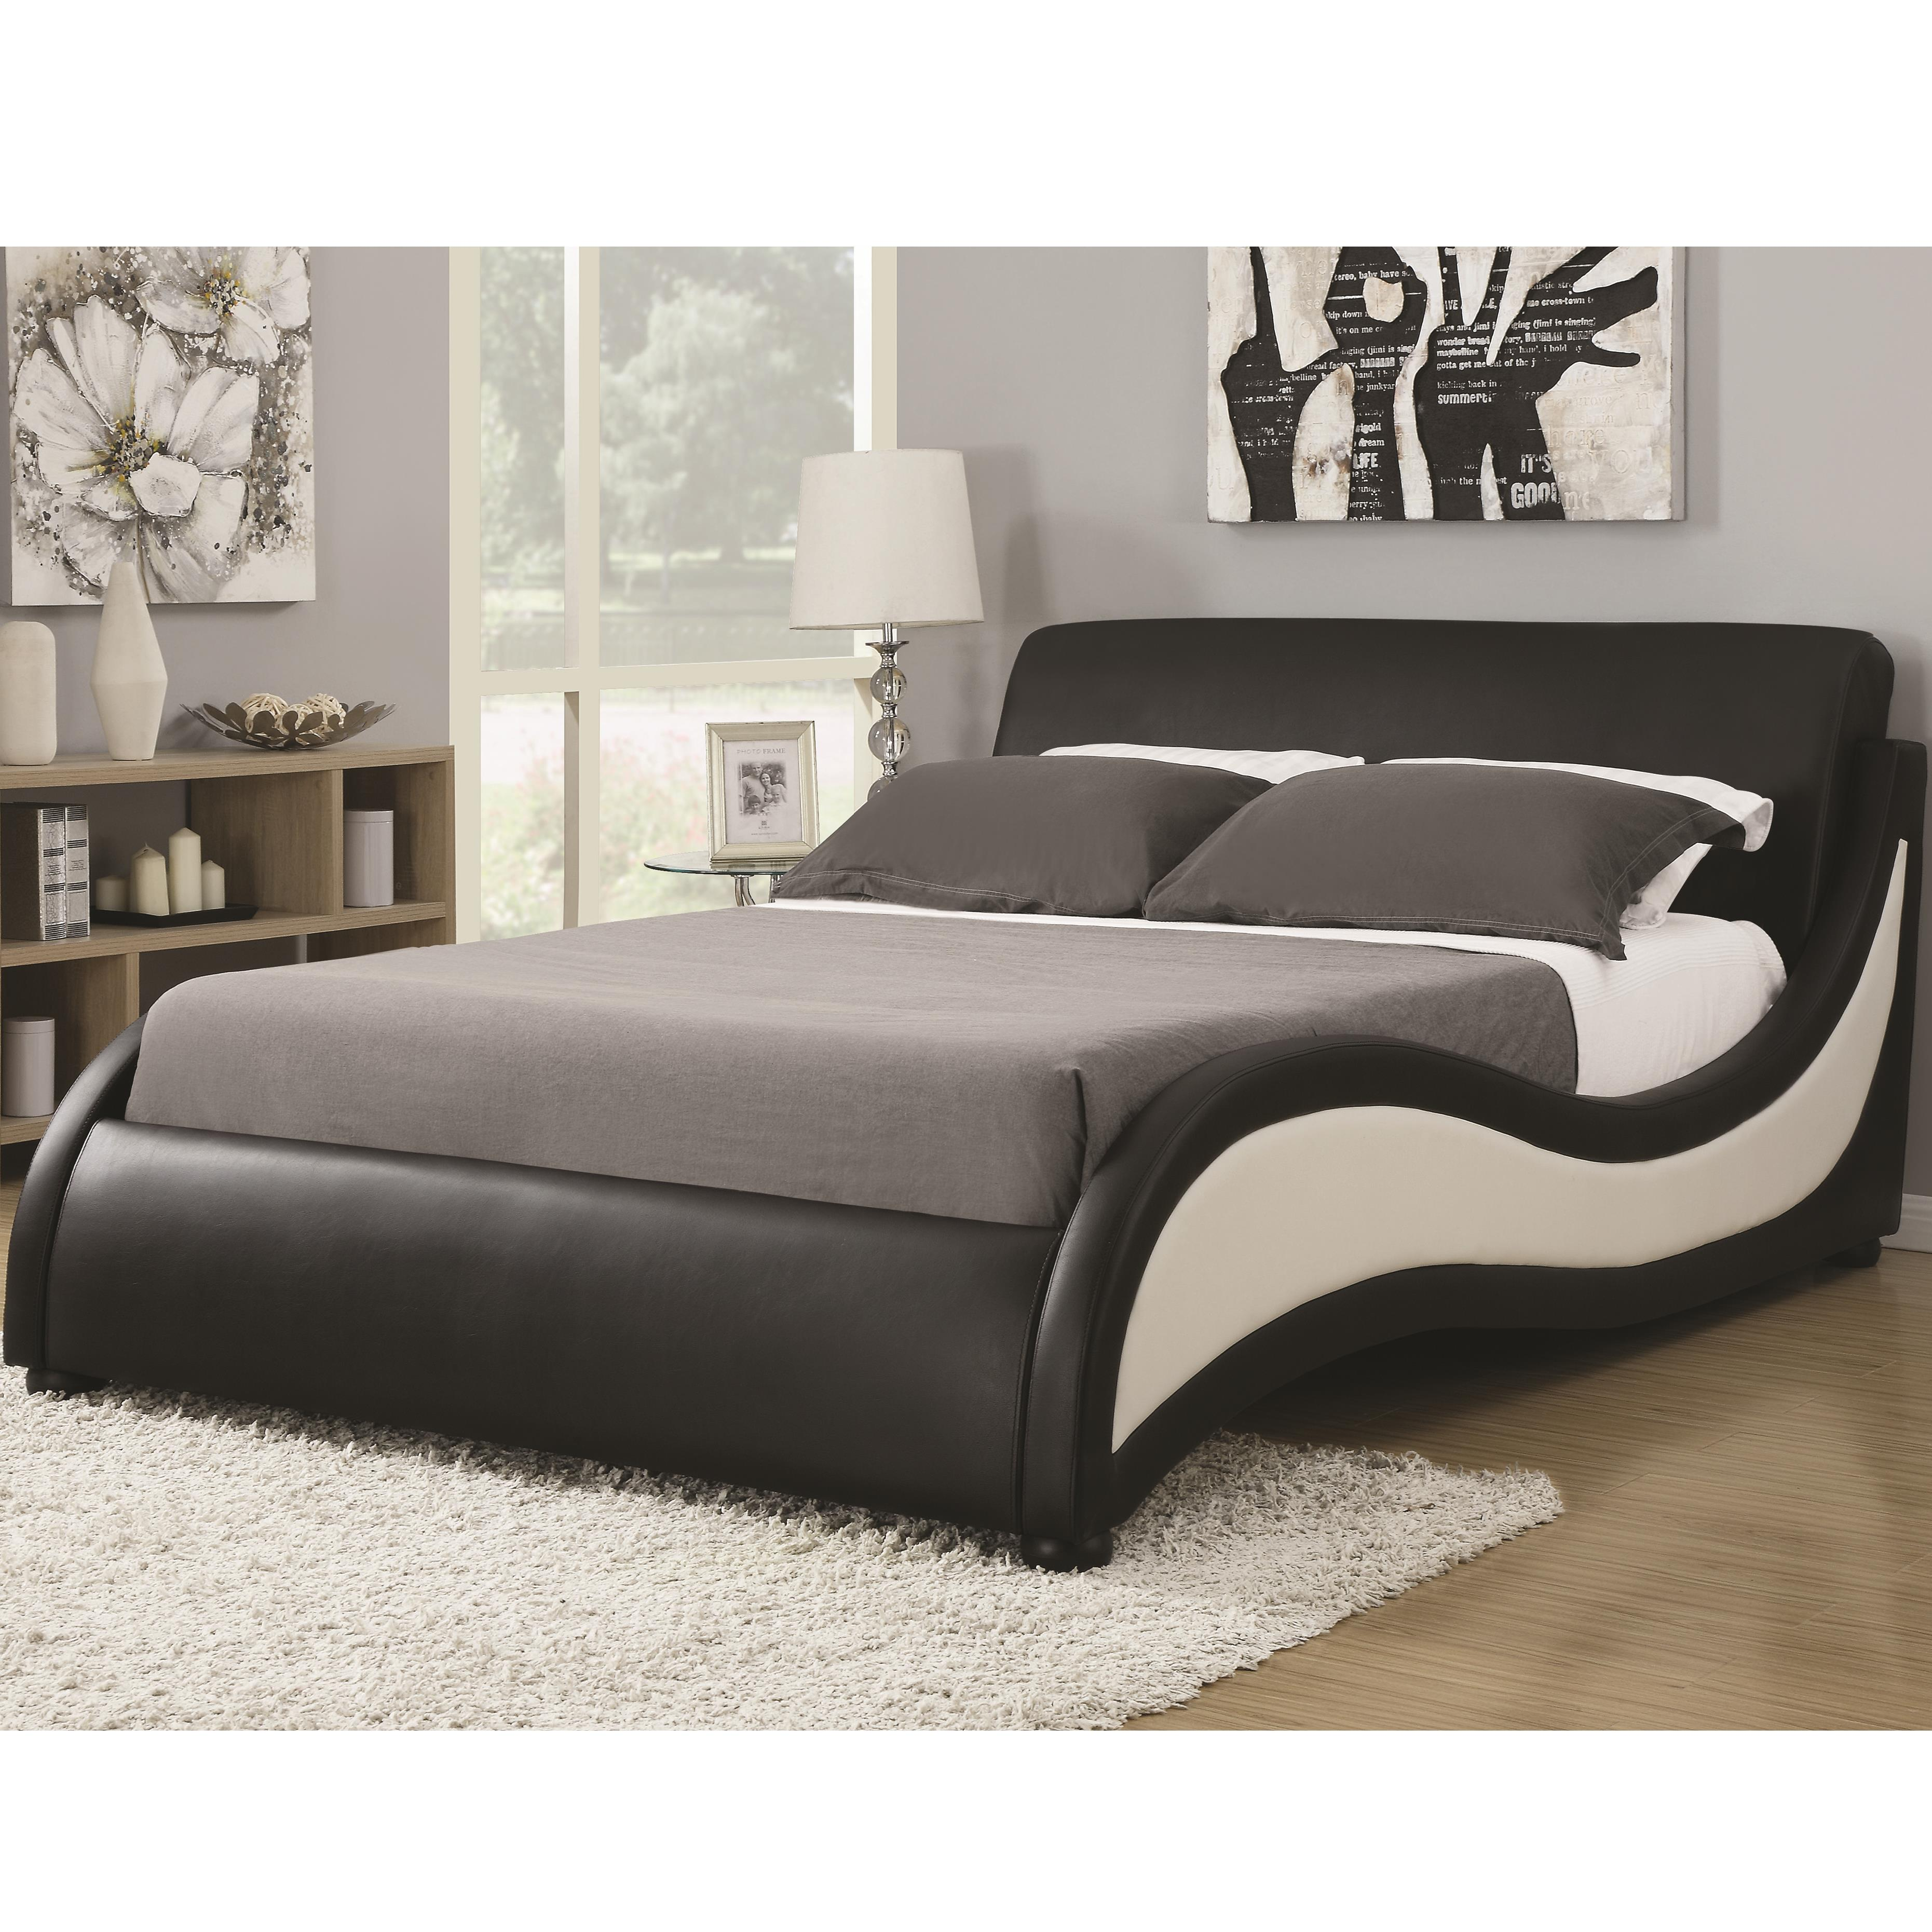 Upholstered Beds Queen Niguel Bed by Coaster at Northeast Factory Direct